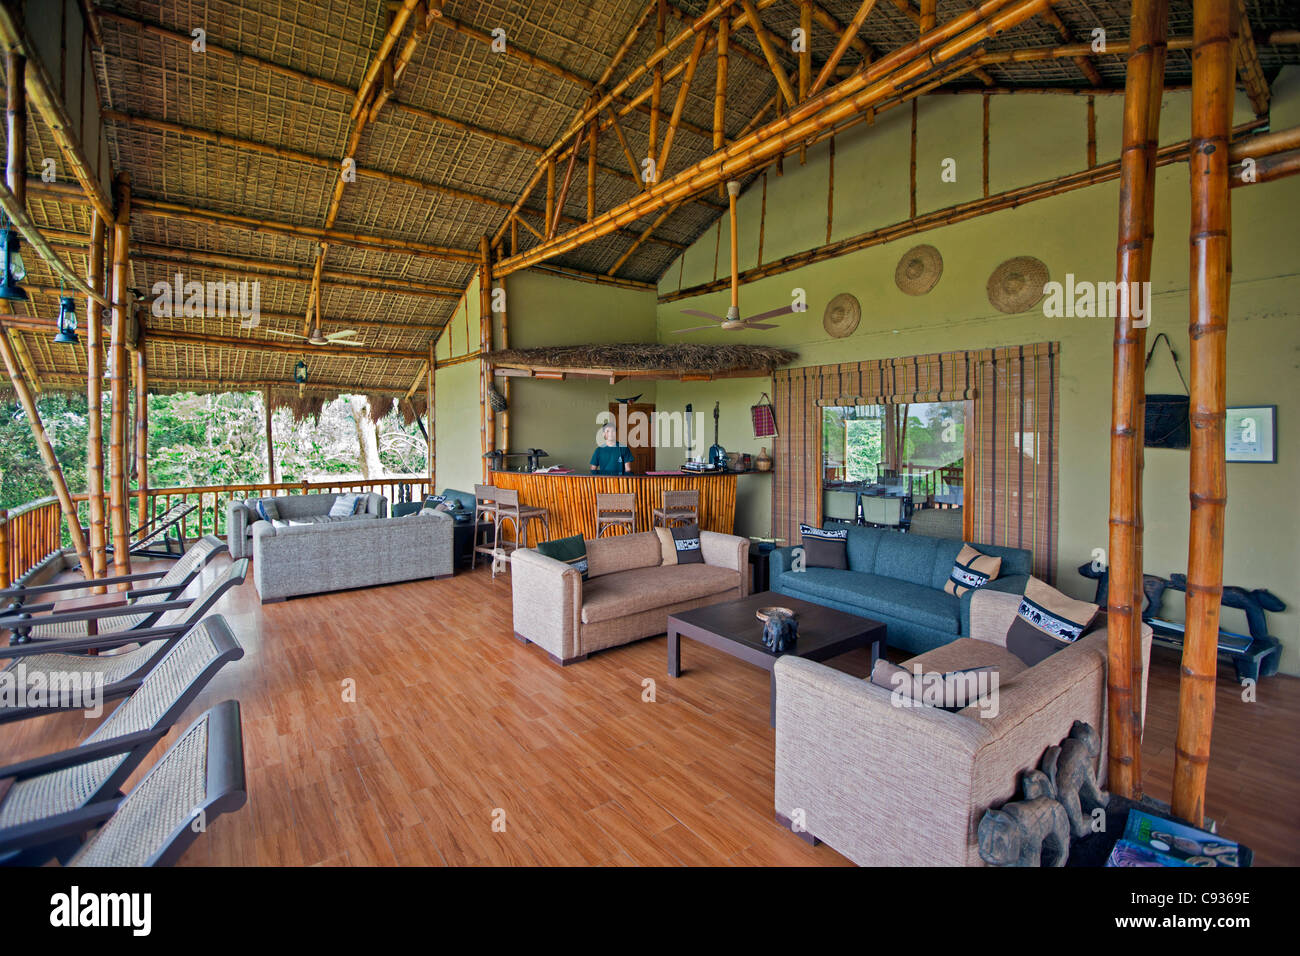 The bar and sitting area of Diphlu River Lodge ideally located next to Kaziranga National Park. - Stock Image